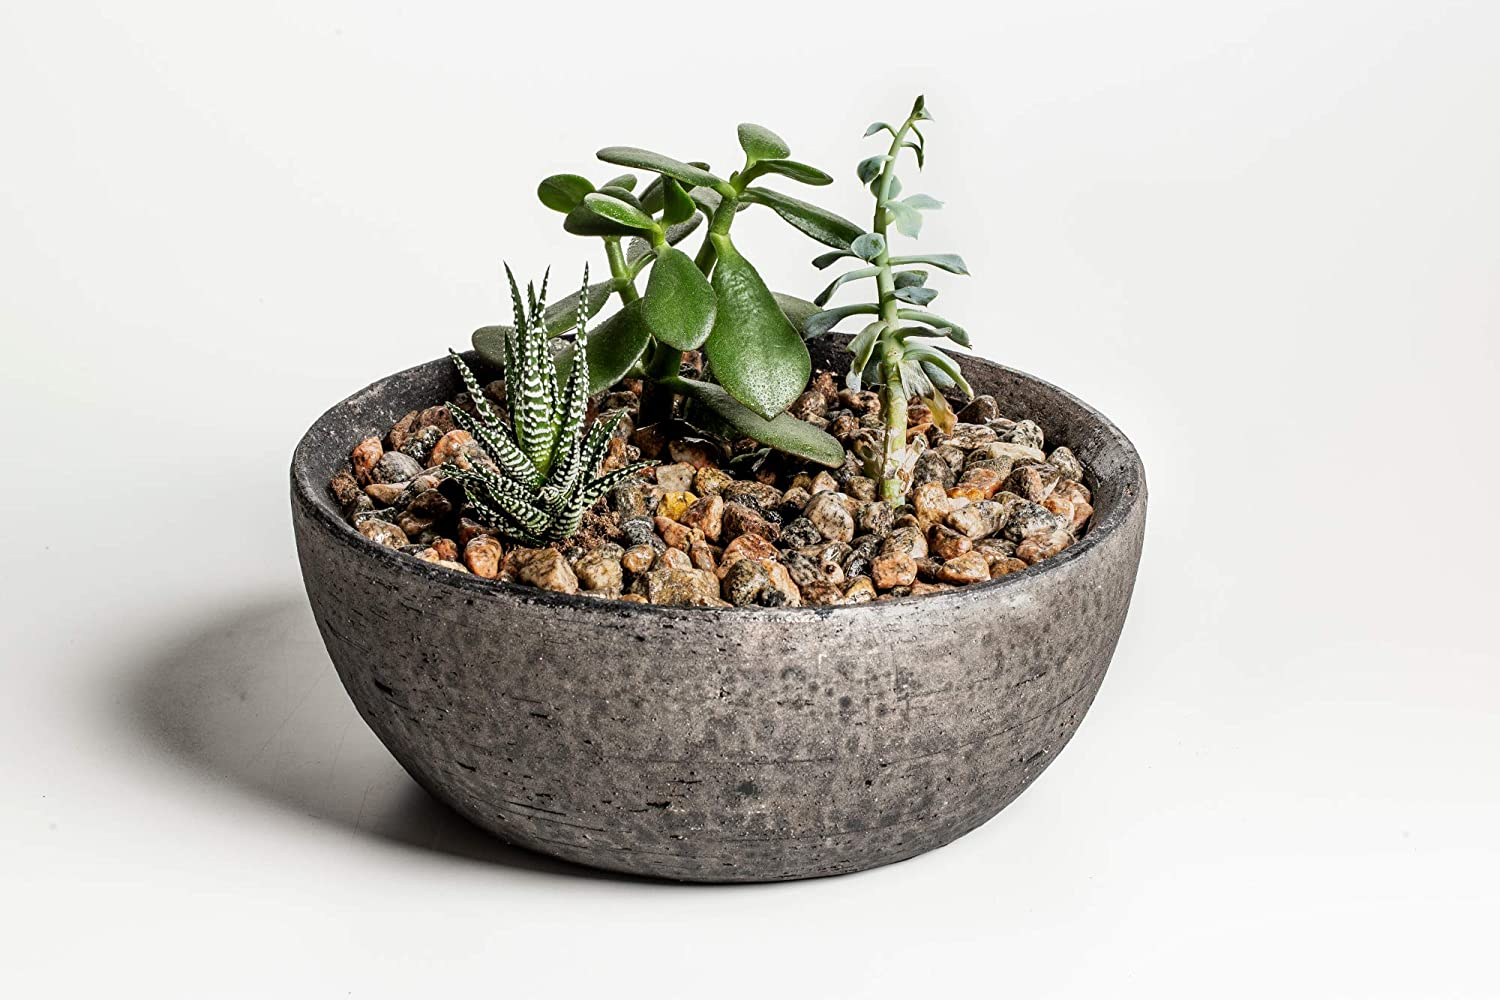 How To Care For A Resurrection Plant